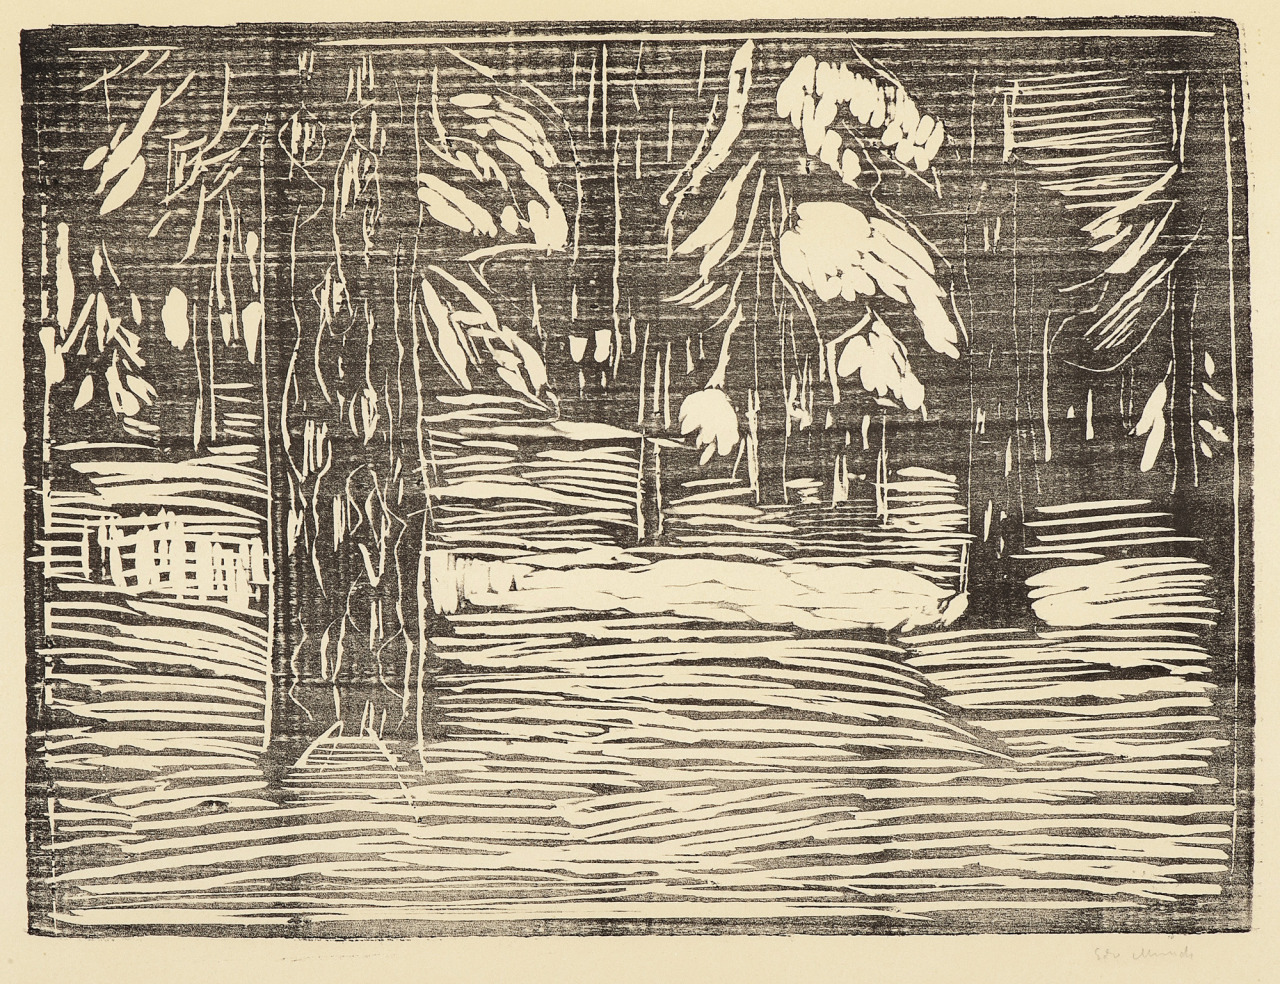 thusreluctant:Woodland in Snow by Edvard Munch